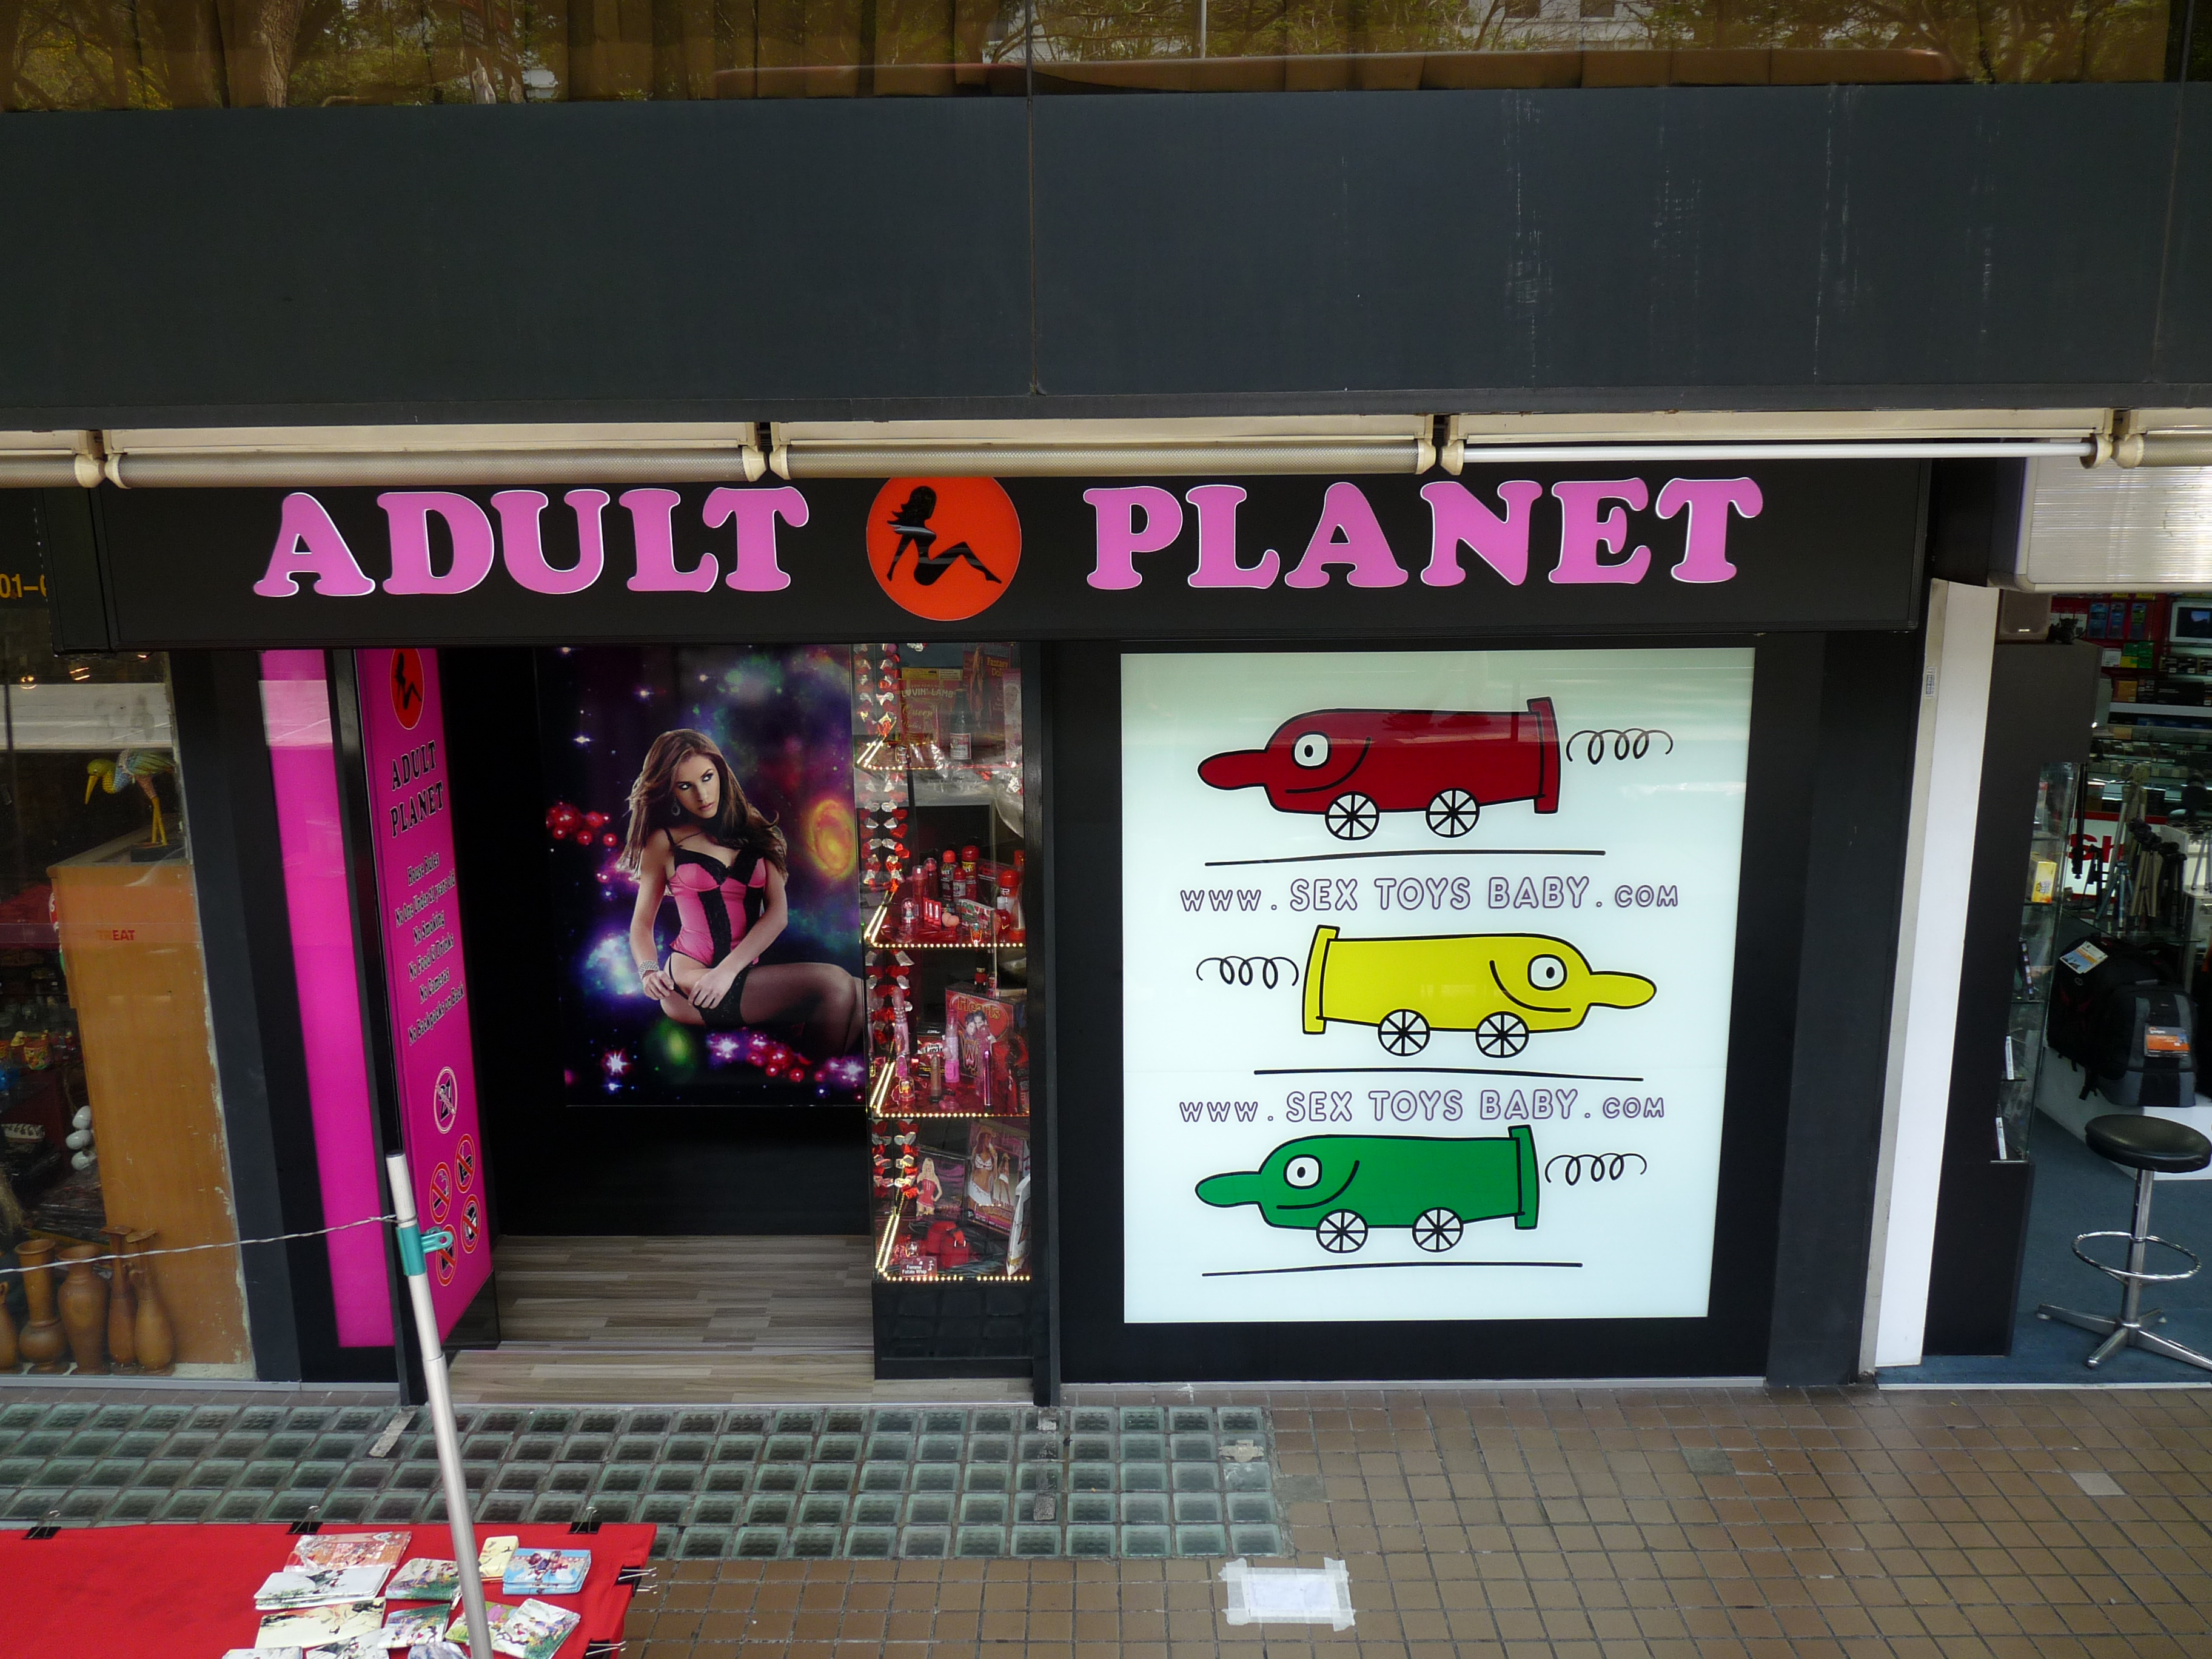 Planet adult